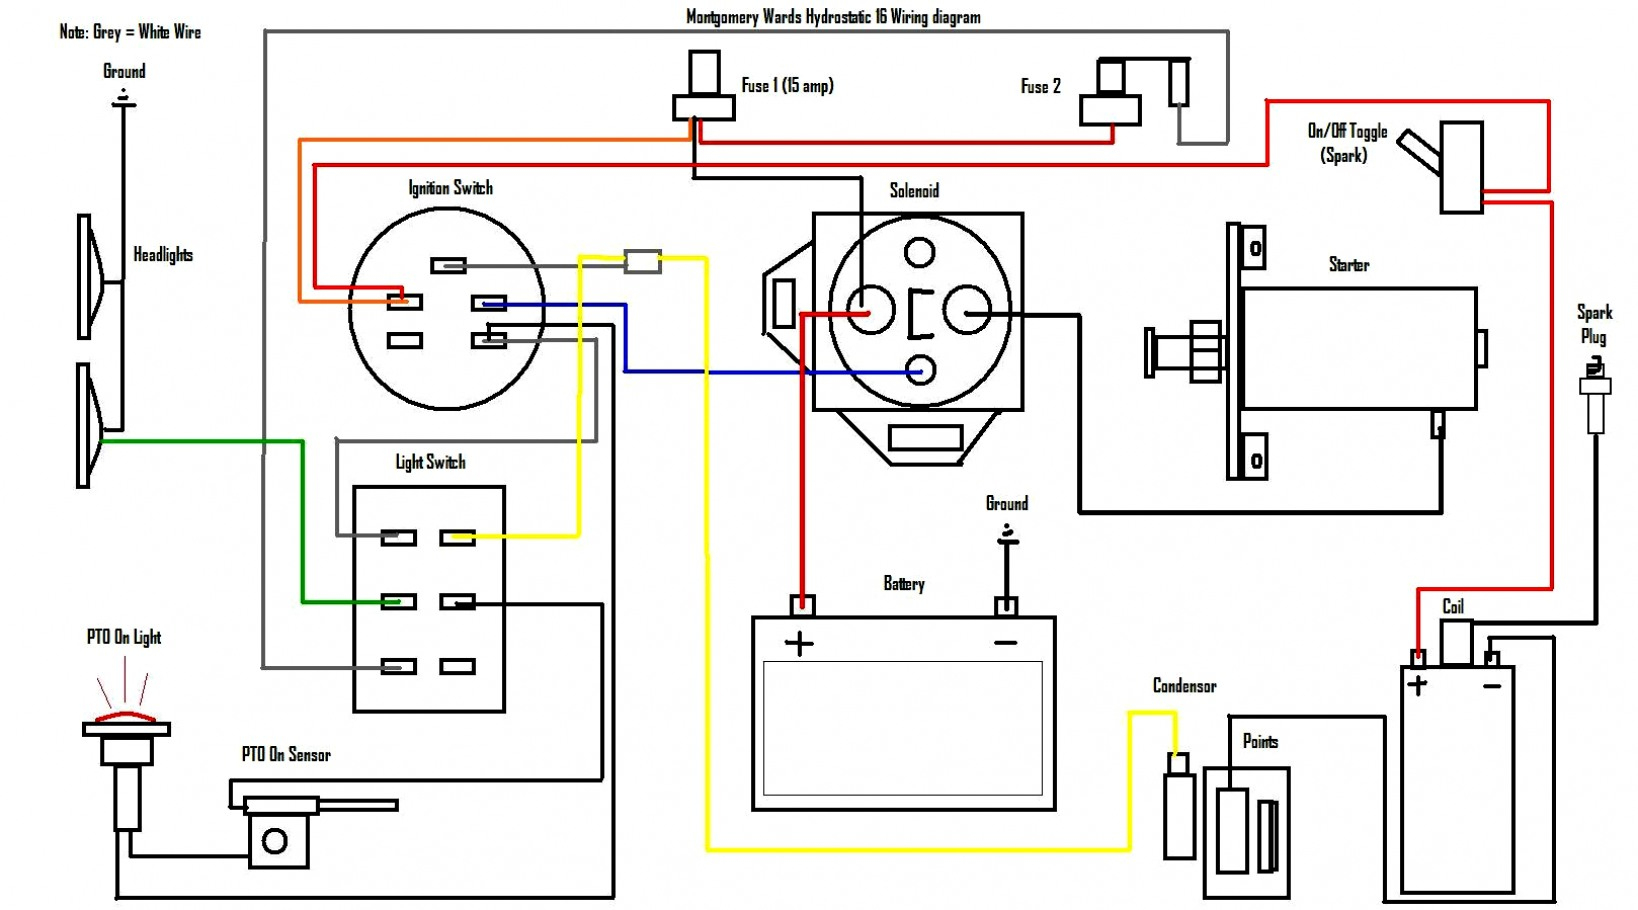 12 Hp Briggs And Stratton Wiring Diagram | Wiring Diagram - Briggs And Stratton Wiring Diagram 16 Hp